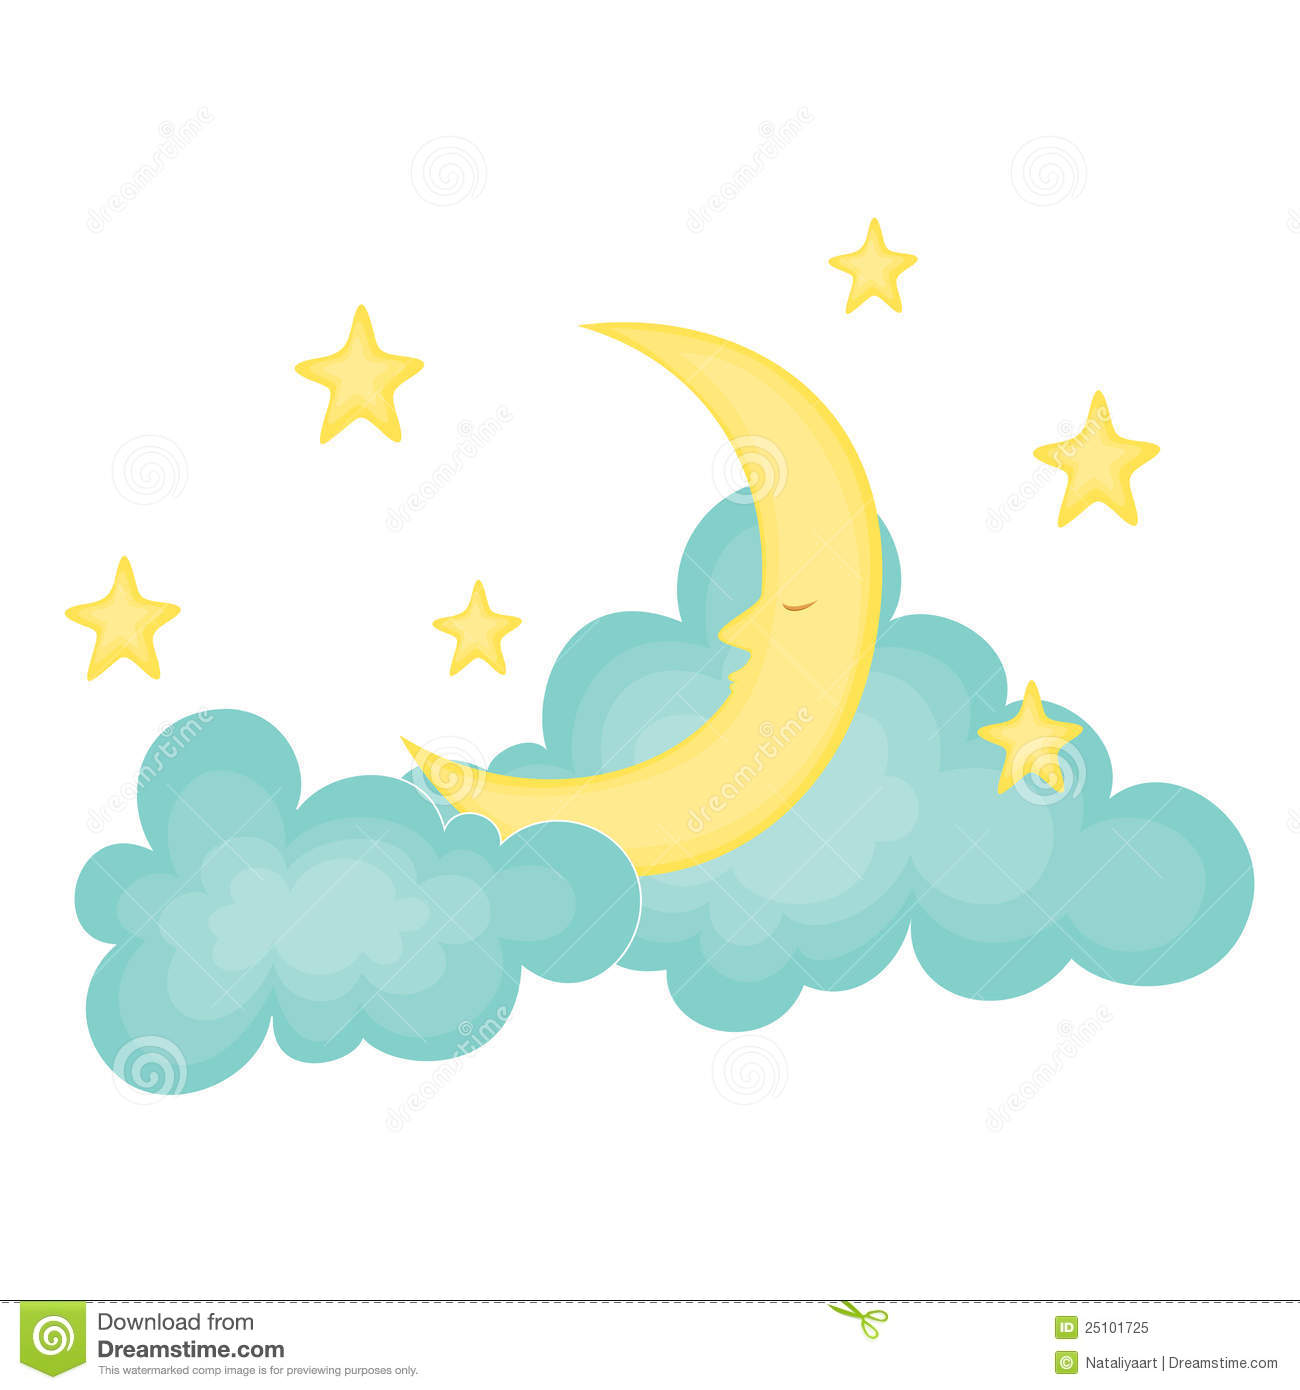 Falling Stars clipart moon star THE Moon AND Savoronmorehead Stars